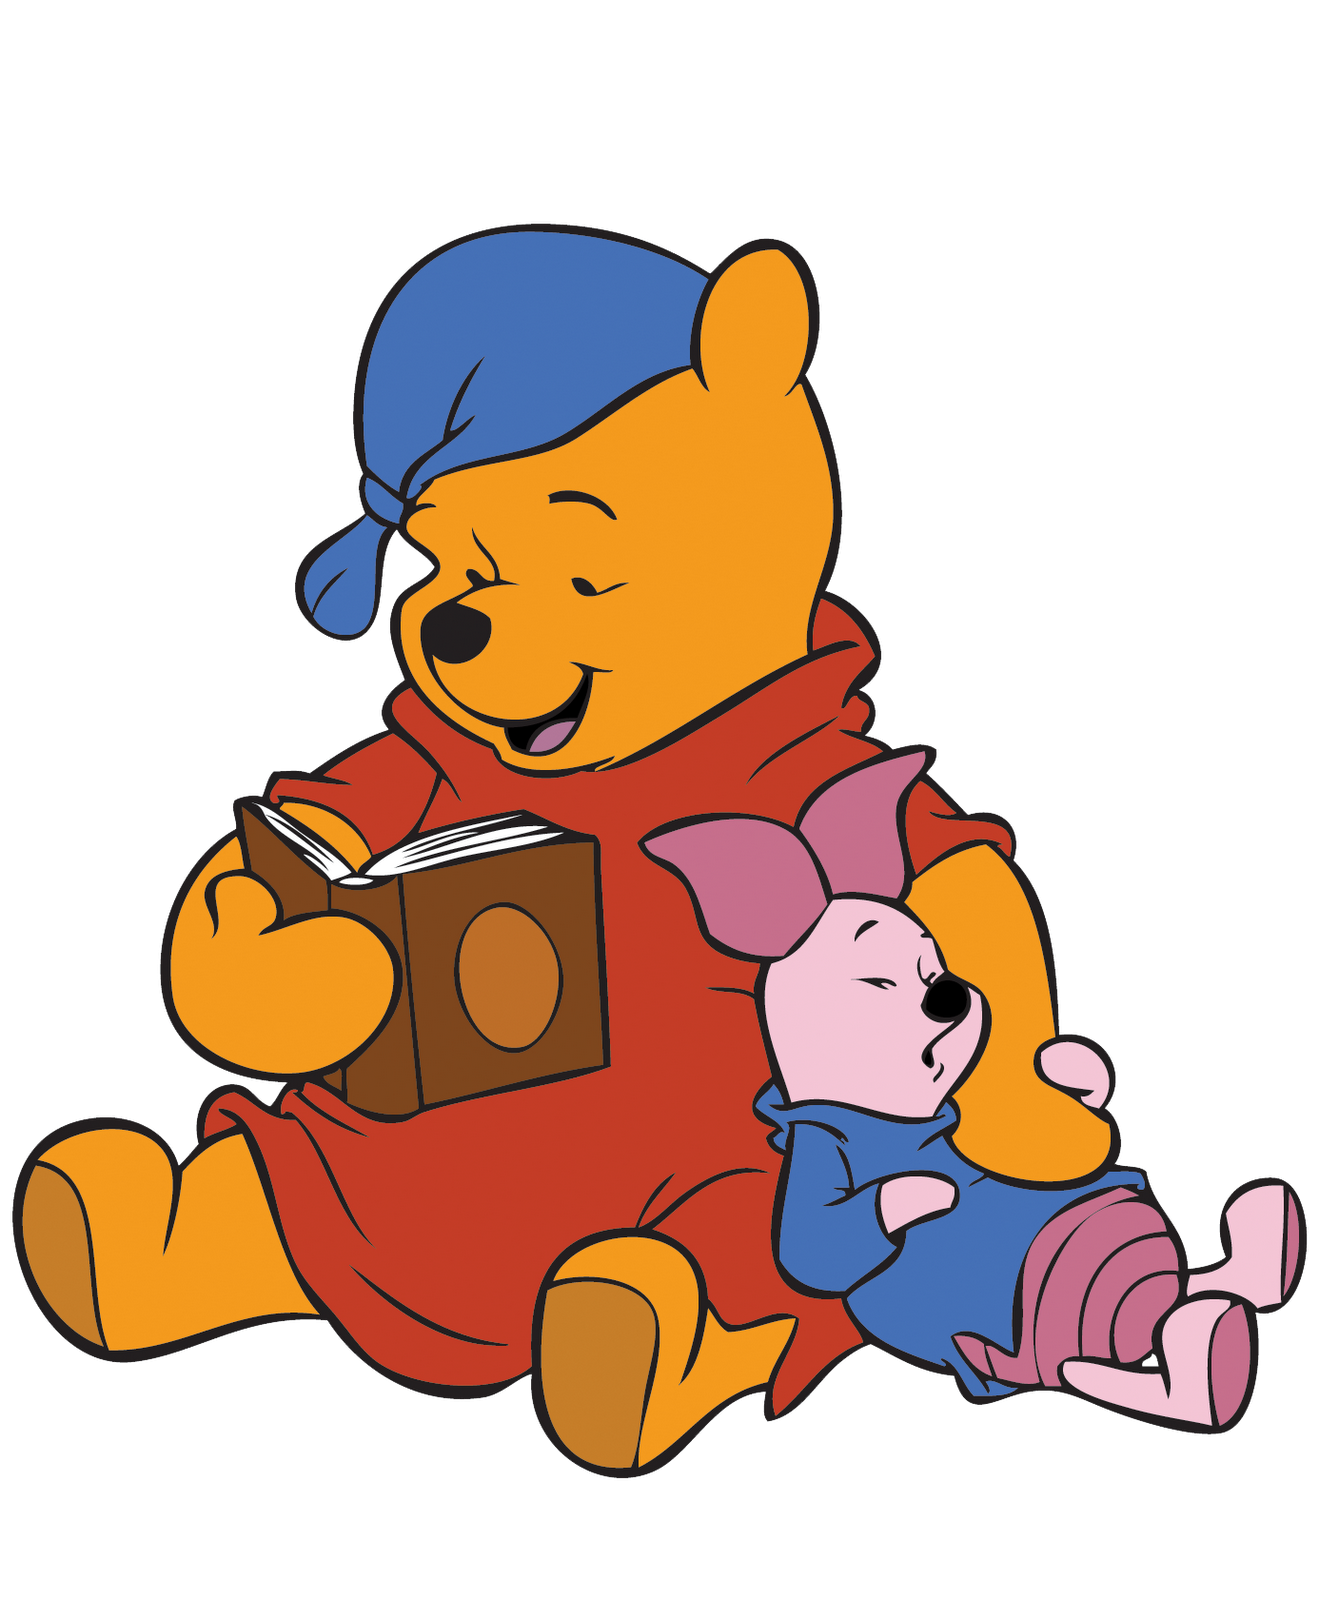 imagens PNG winnie the pooh | Imagens para photoshop